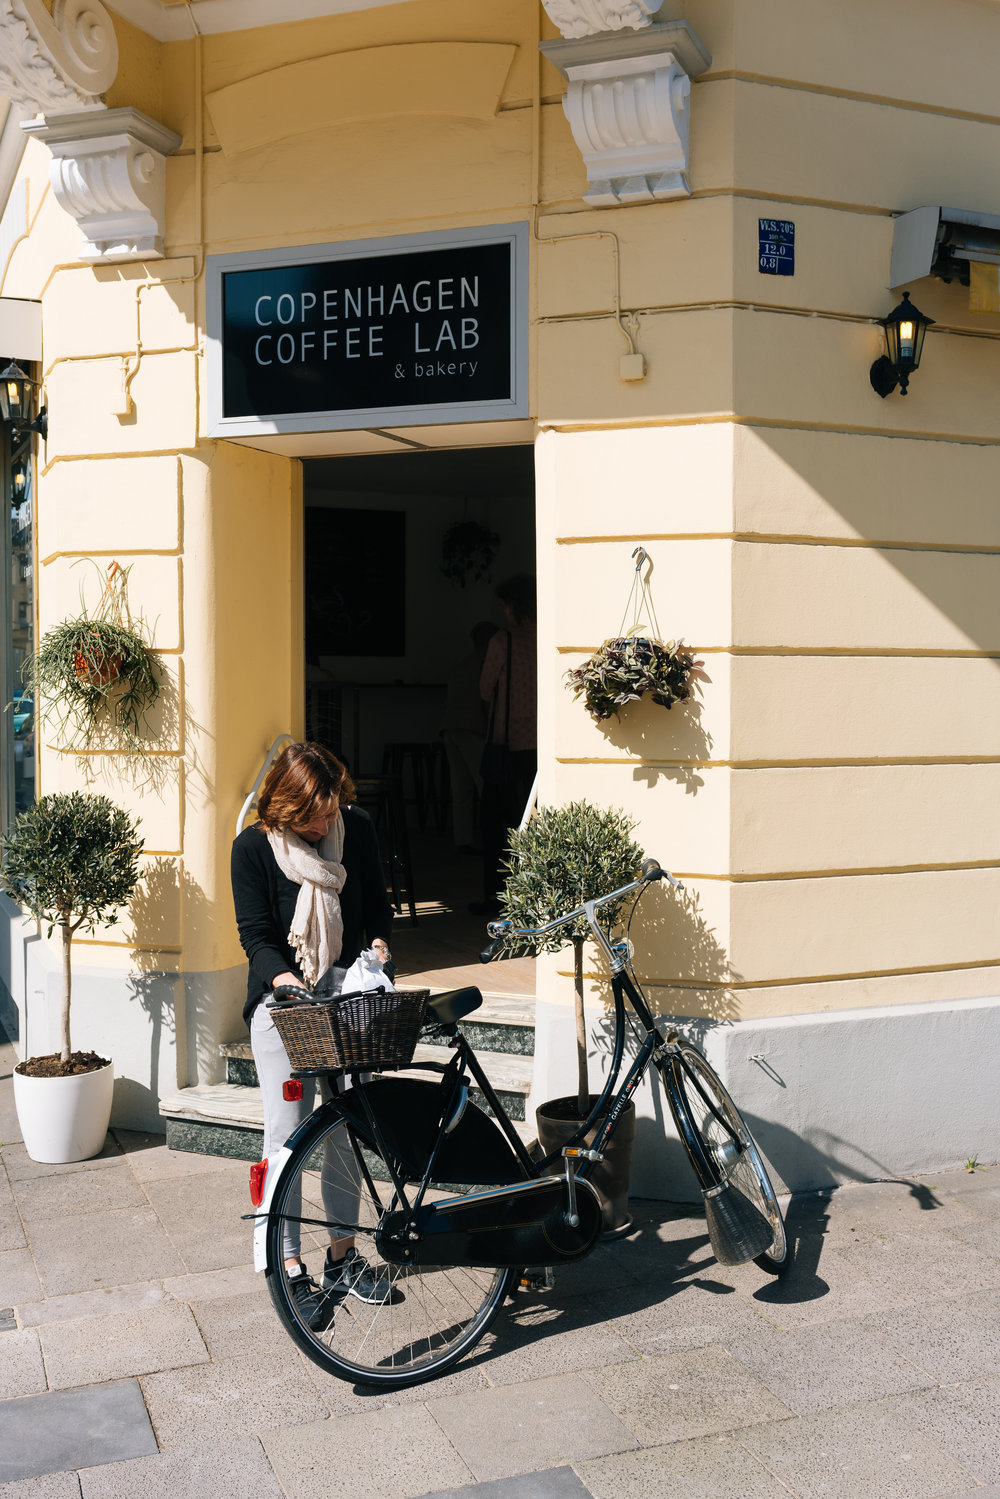 Copenhagen Coffee Lab and Bakery 001.jpg